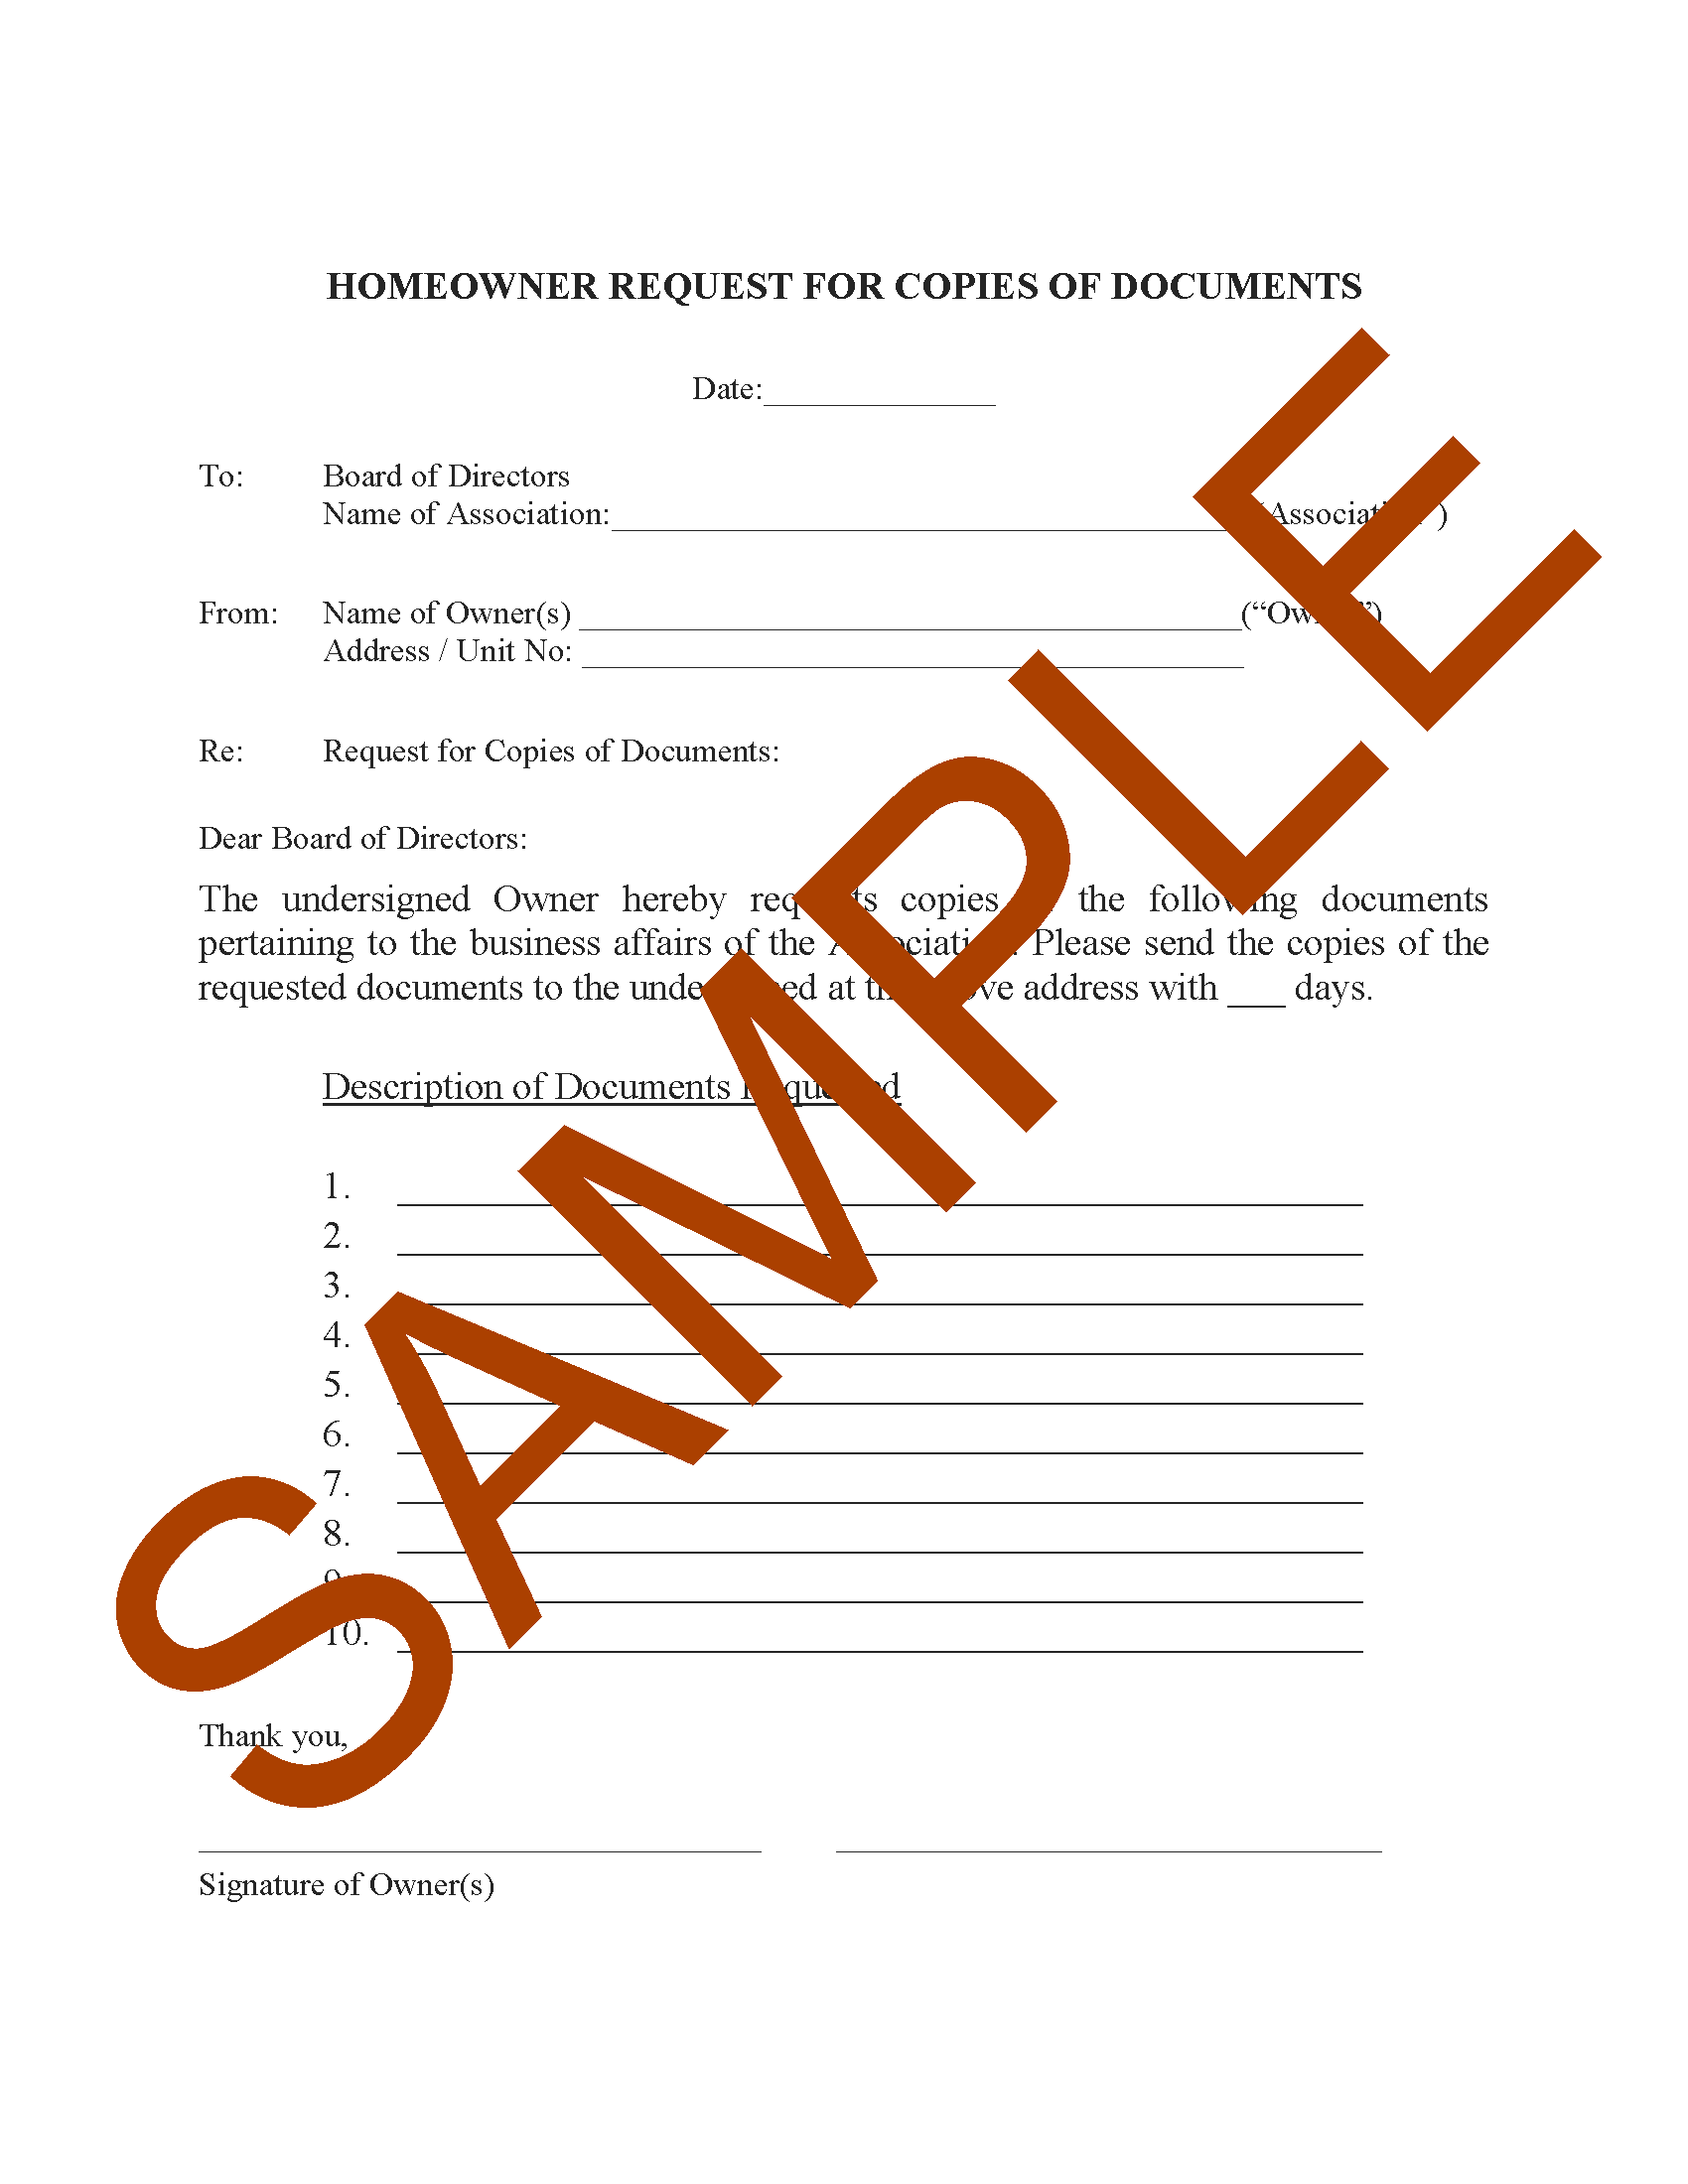 Homeowner Request For Copies Of Documents